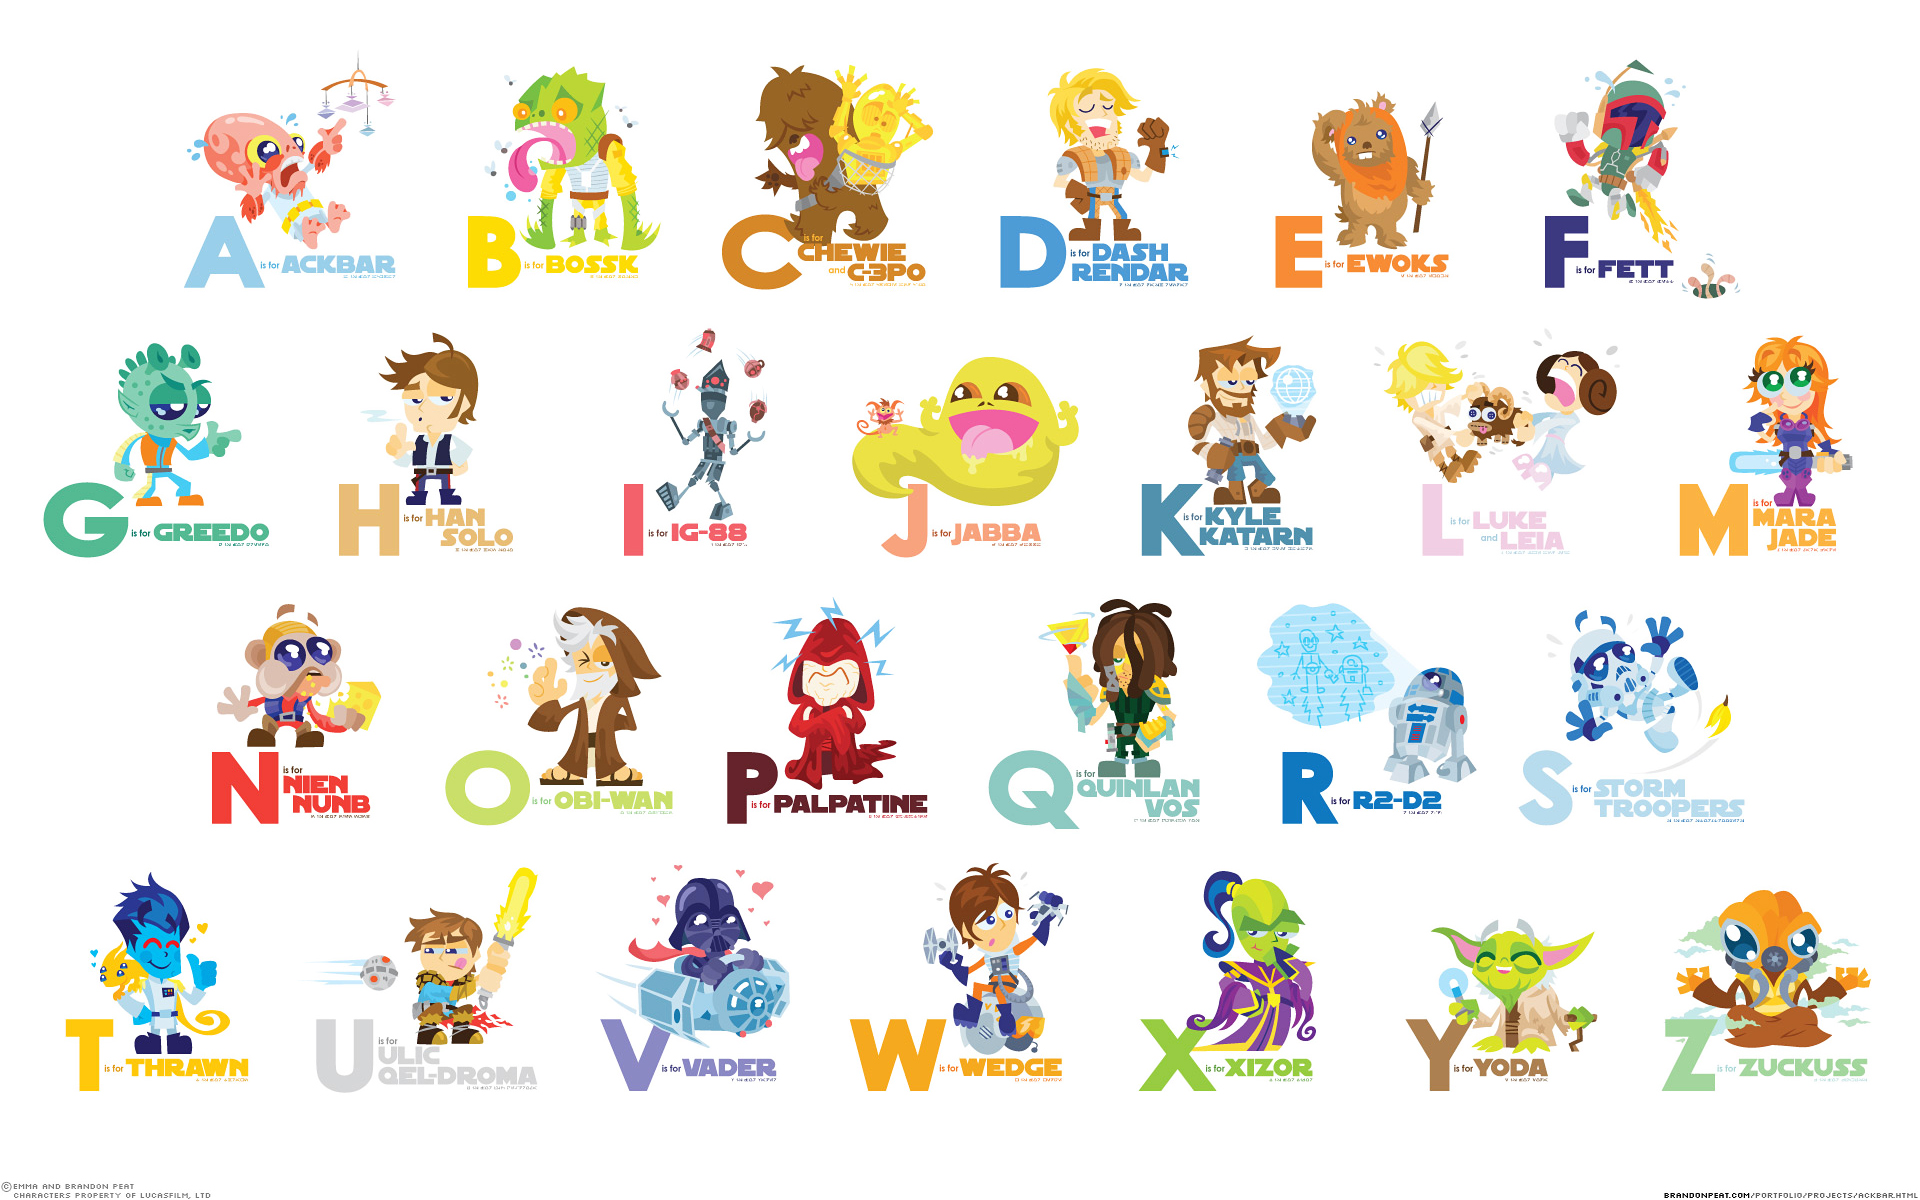 Free Download Wallpapers Full Hd Wallpaper Search 8kr52bi7 Alphabet Wallpapers 1920x1200 For Your Desktop Mobile Tablet Explore 78 Alphabet Wallpaper Letter A Wallpaper Alphabet Wallpaper Borders Alphabet Wallpaper For Walls